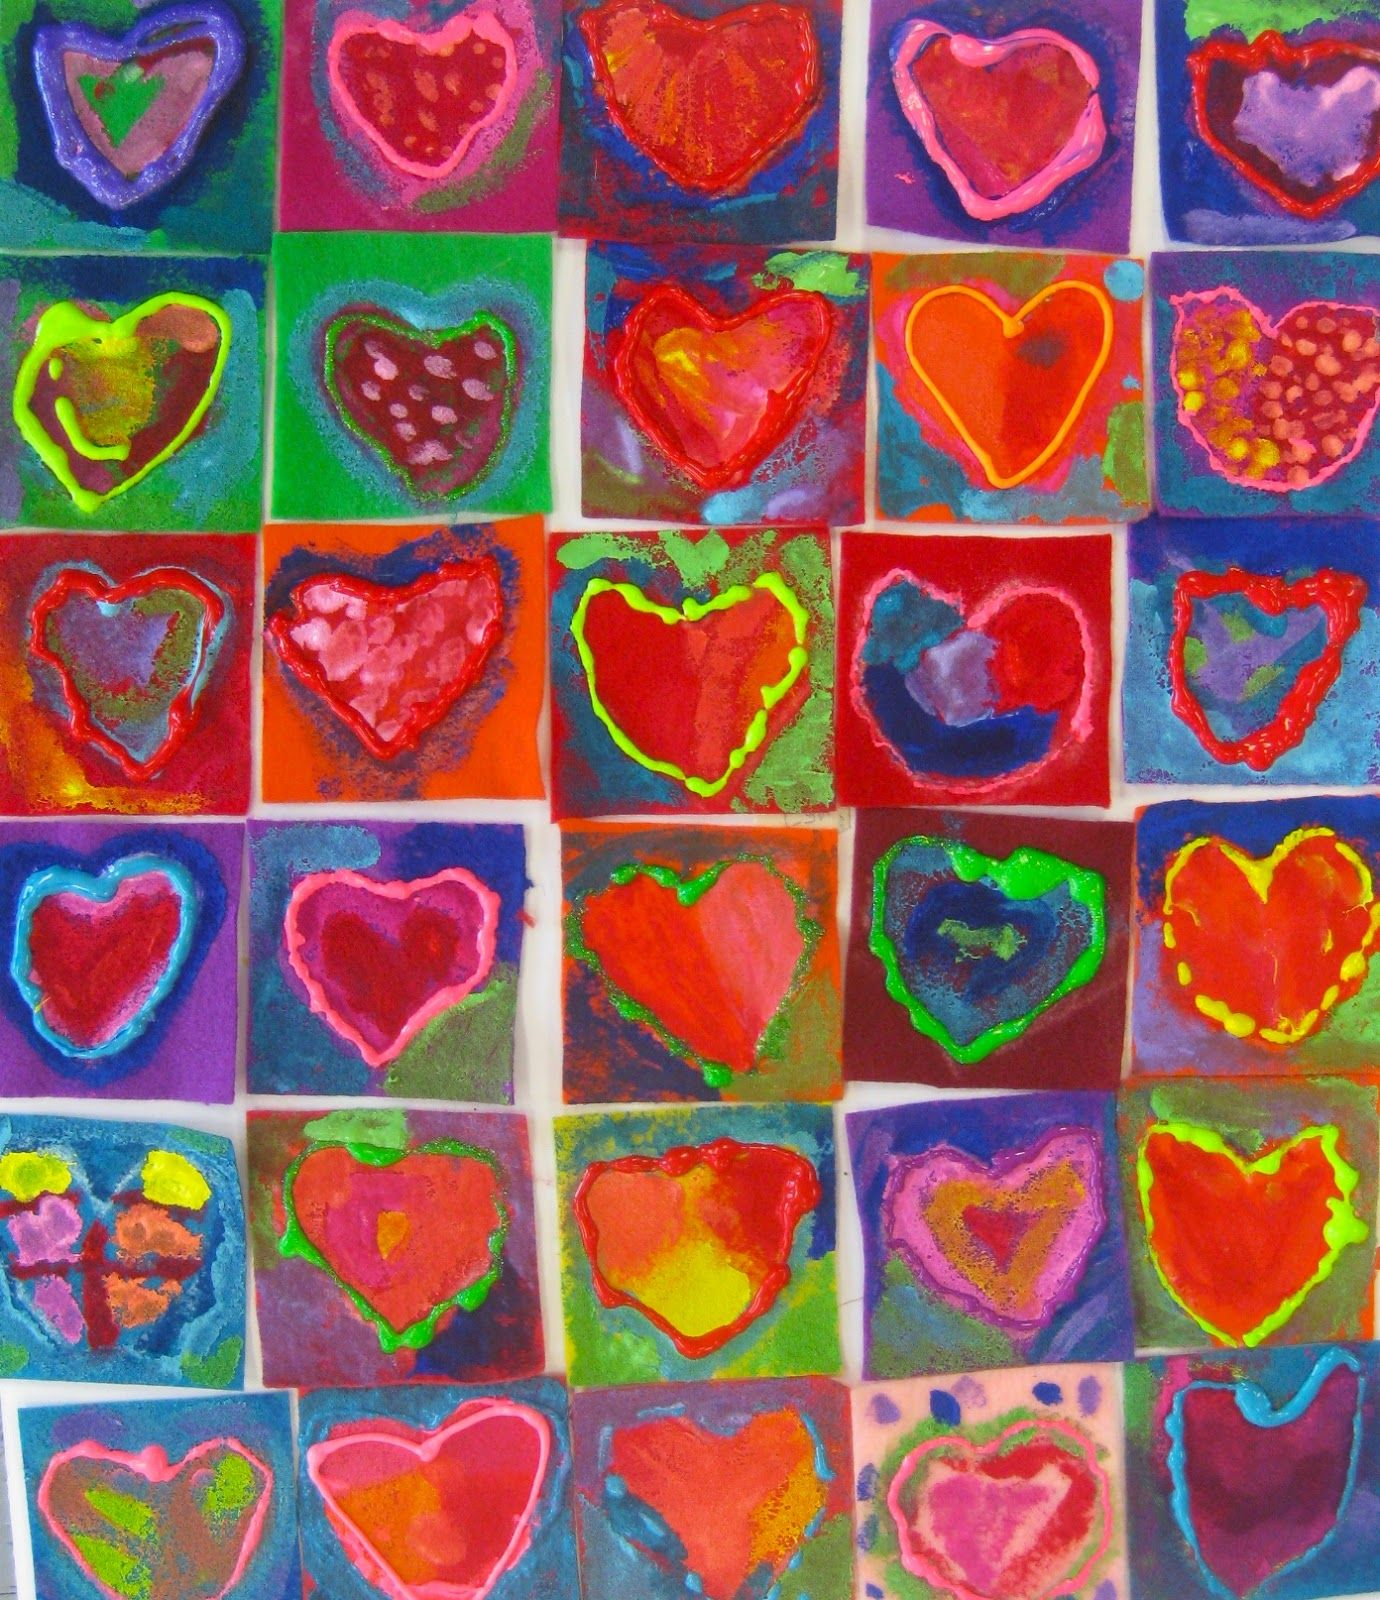 In The Art Room Our School Has Heart Mural Project Part